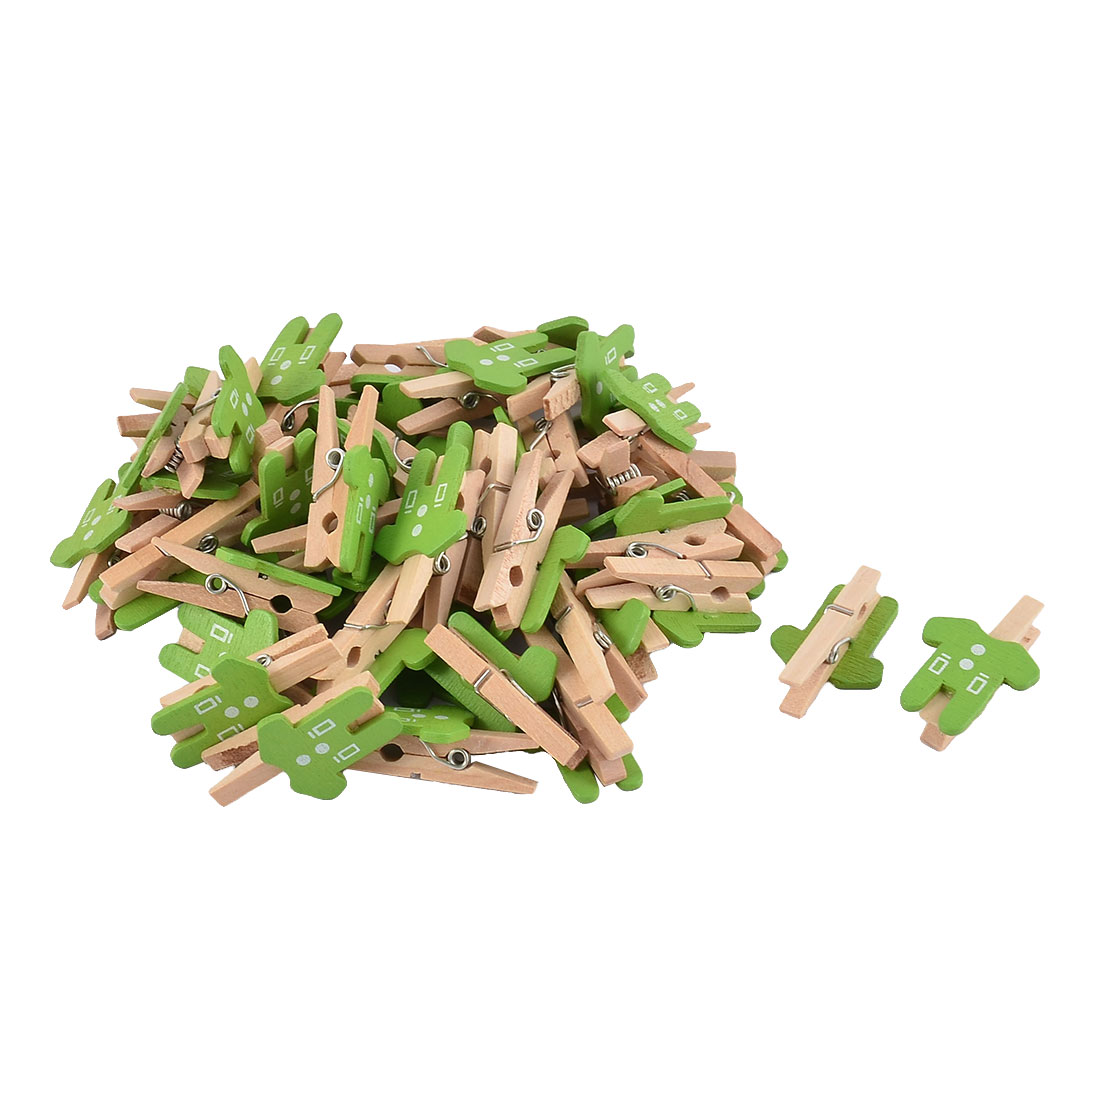 Card Photo Clothes Shape Crafts Spring Pegs Mini Wooden Clip Green 50pcs - image 2 of 2